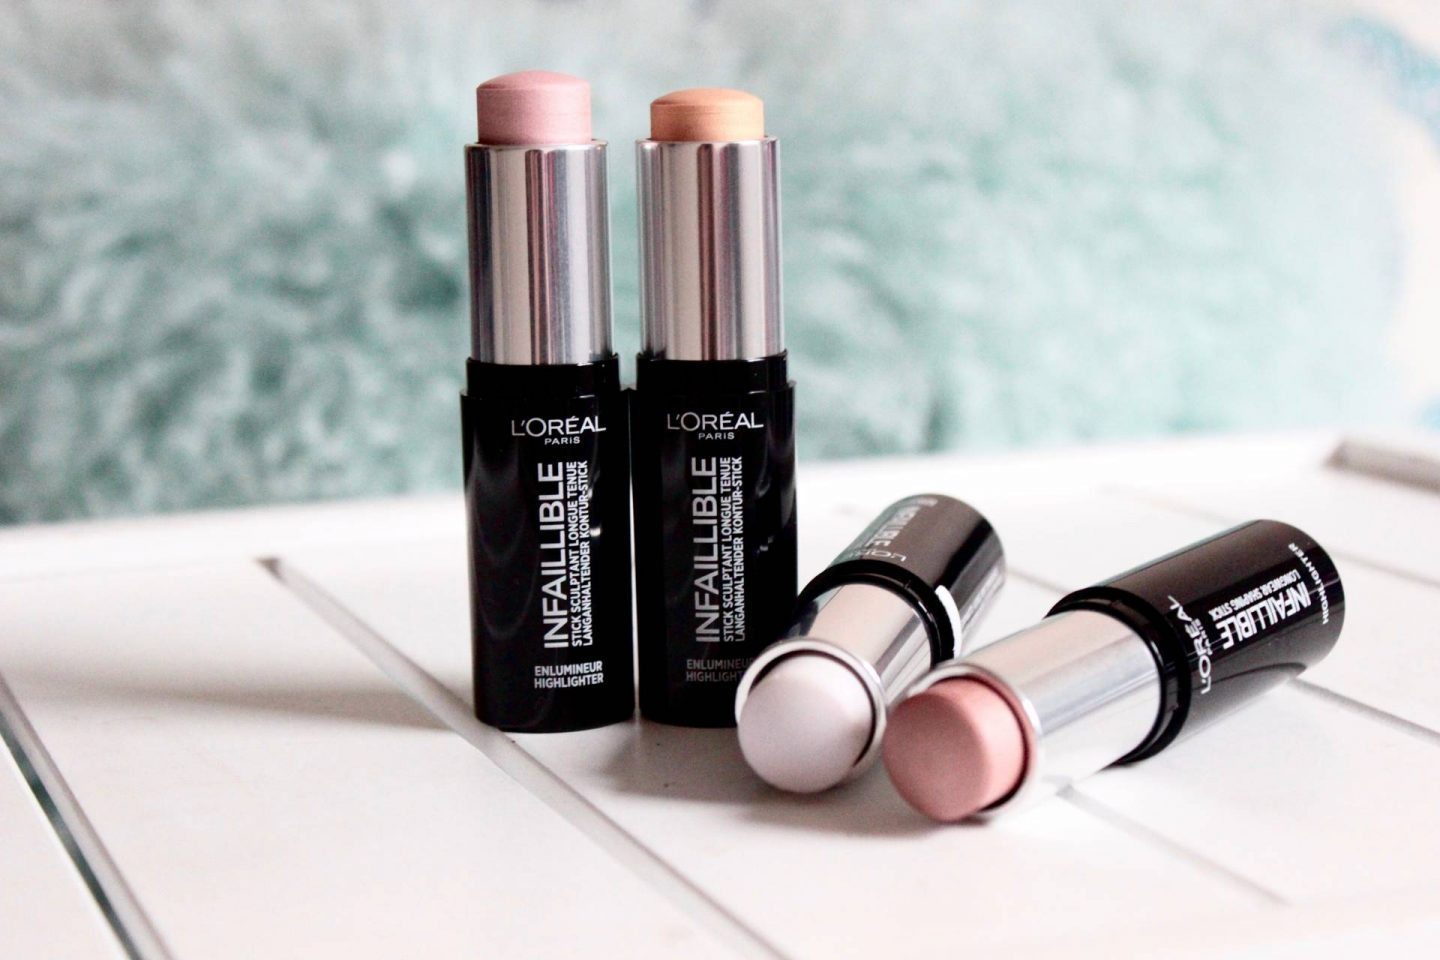 Shot it, shape it, strobe it – multi-priming, foundation sticks and highlighters from L'Oreal